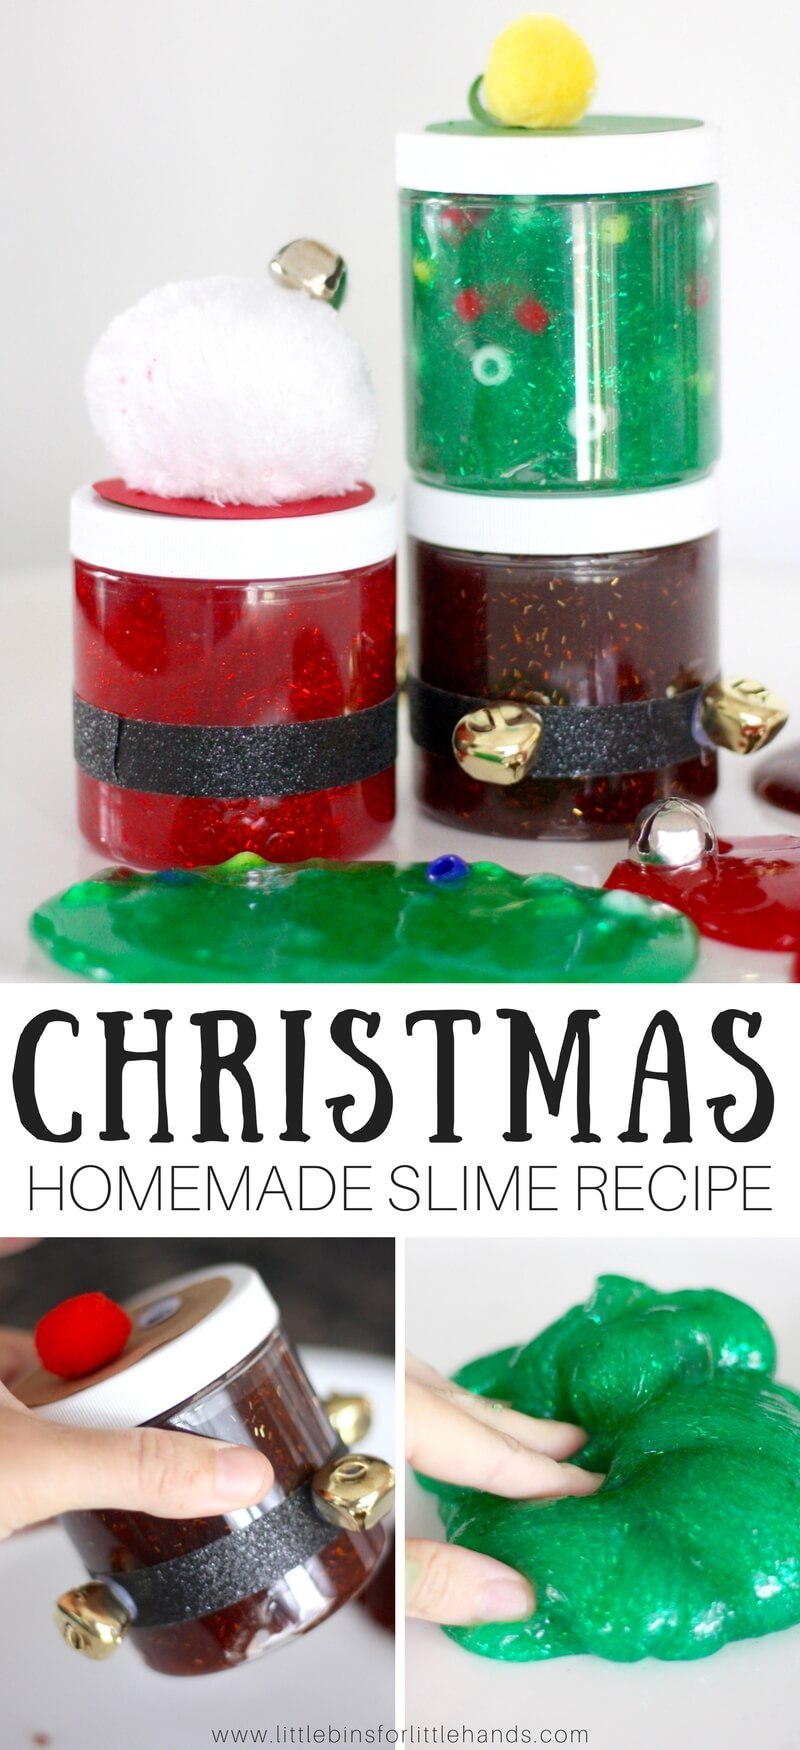 festive and homemade christmas slime recipe for kids